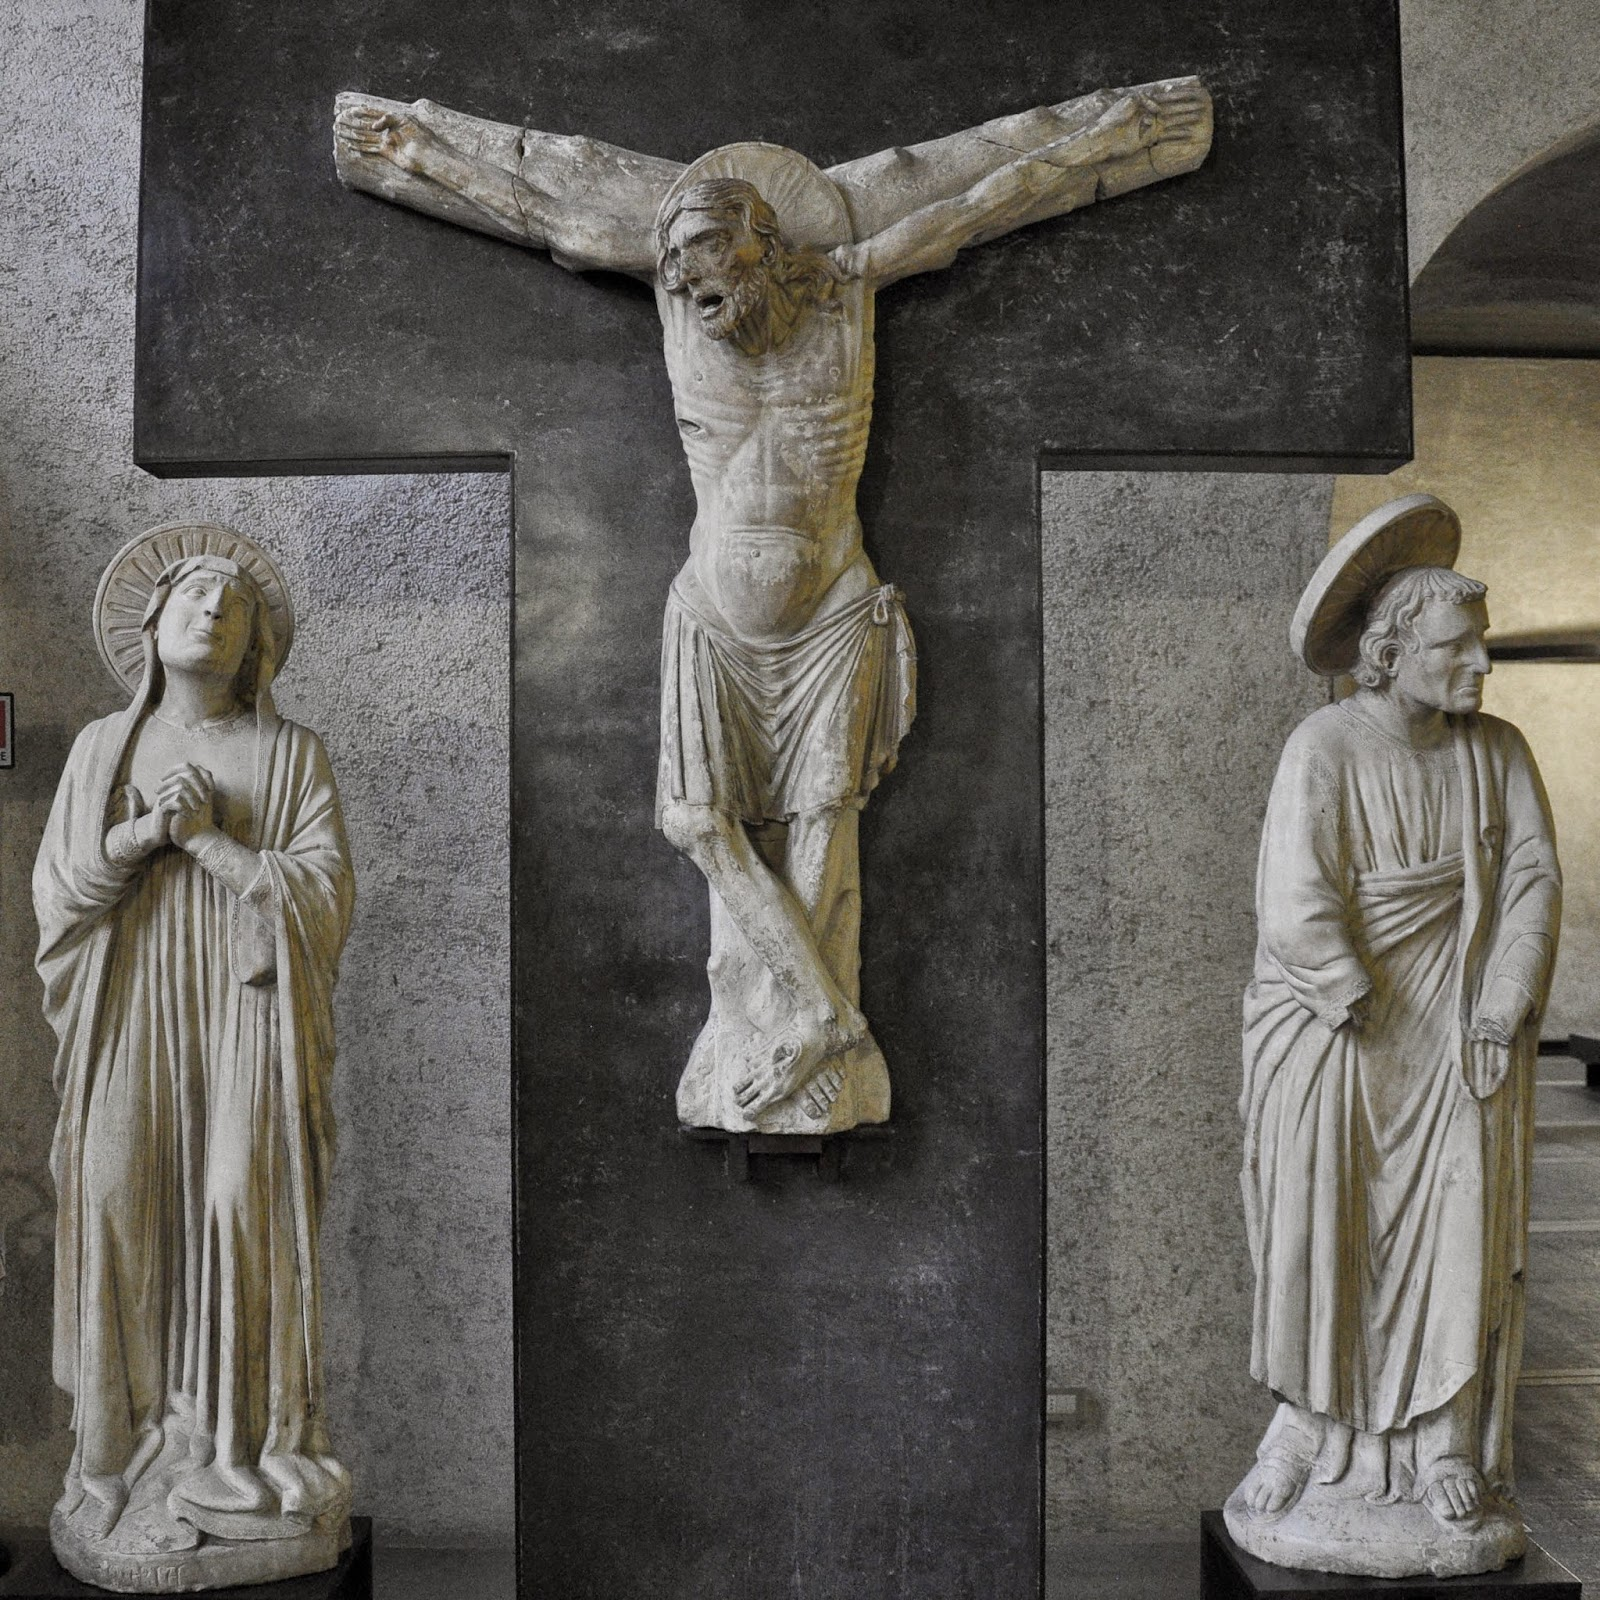 A medieval crucifixion in the Museum of Castelvecchio in Verona